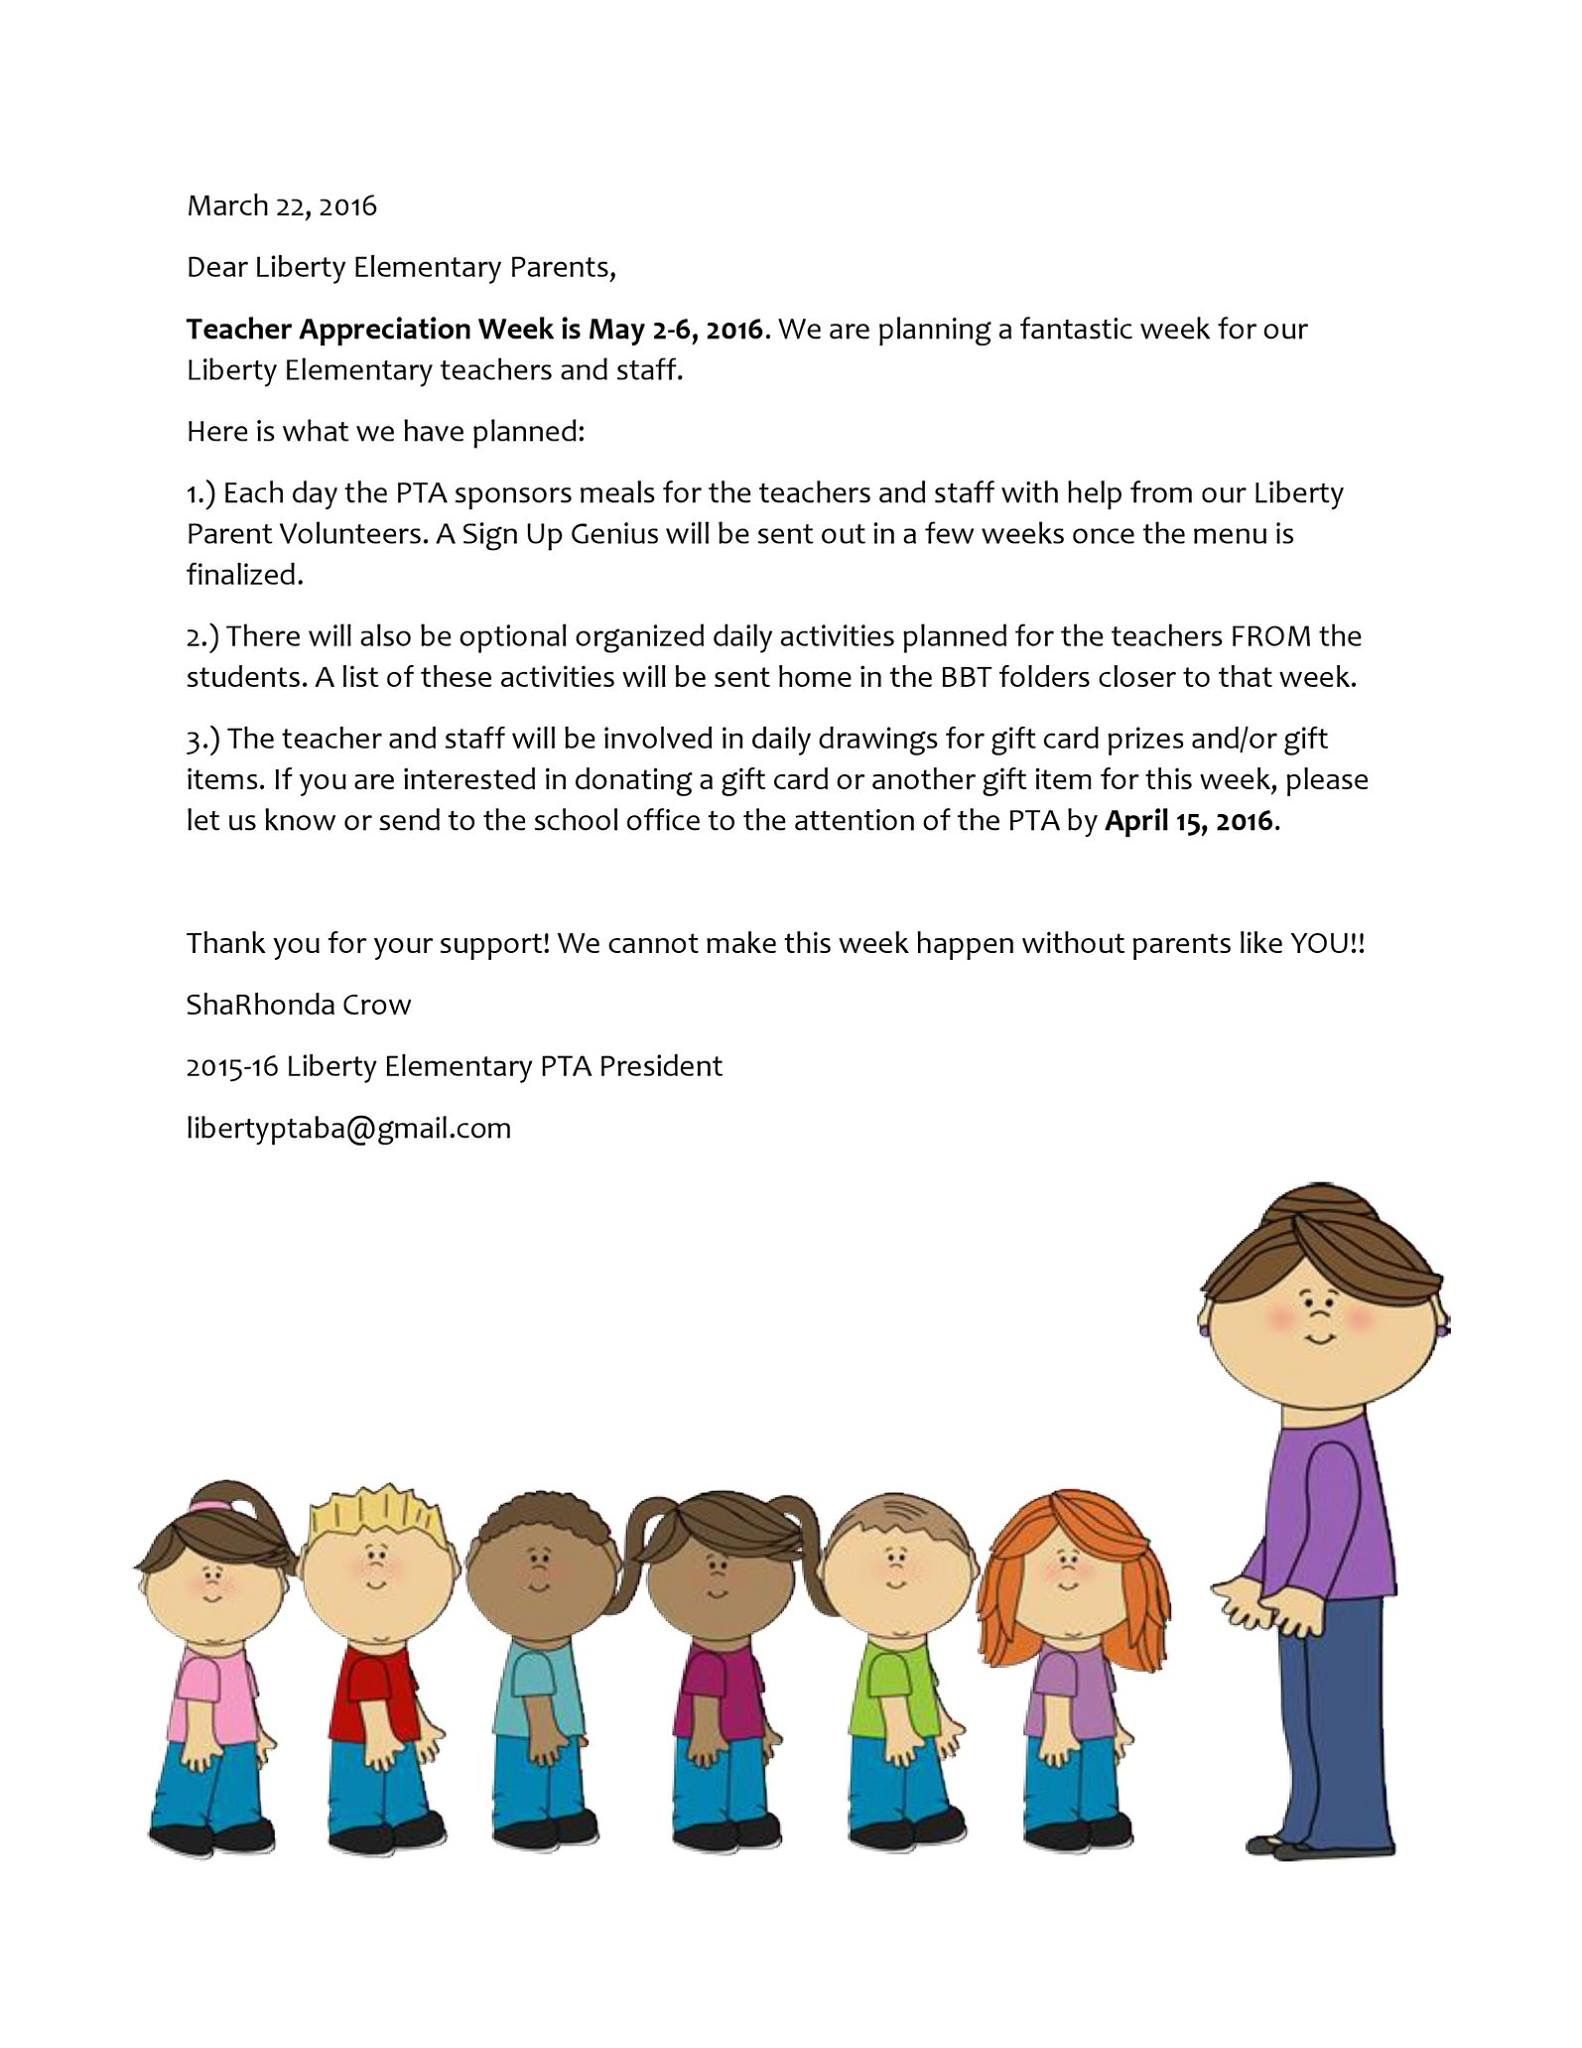 Letter to school asking for gift card donations for TAW